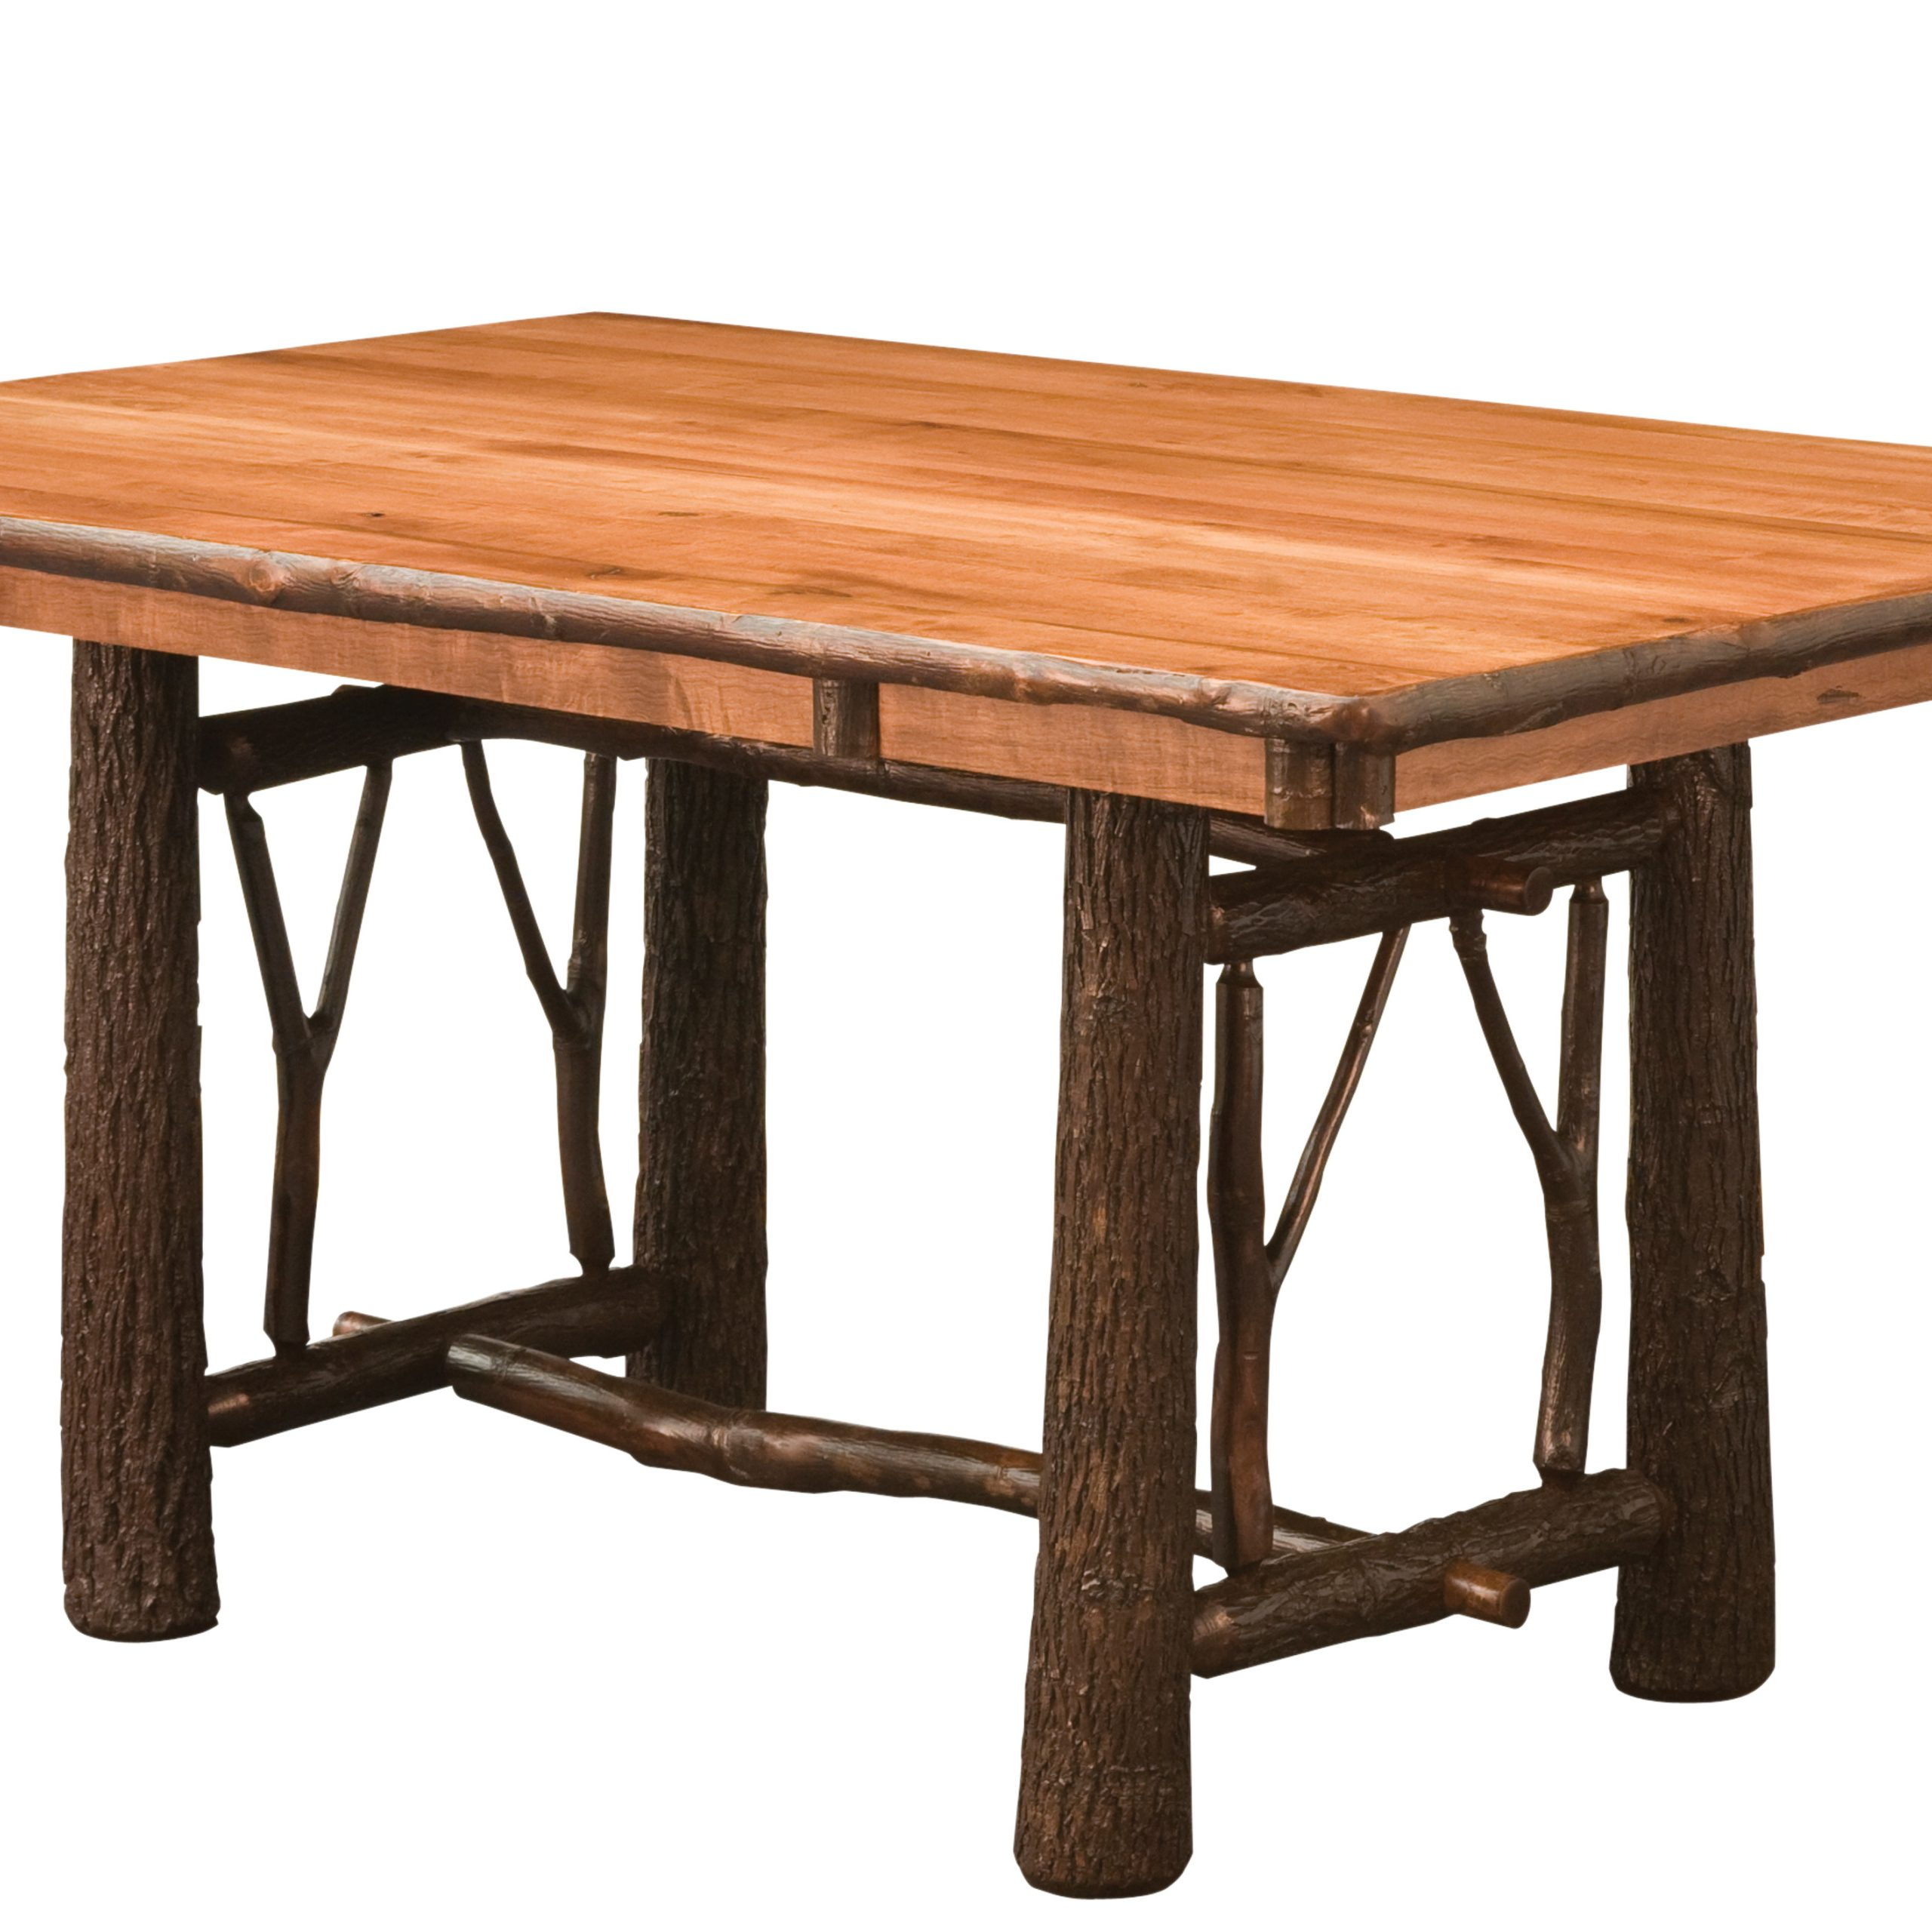 Hickory Twig Trestle Dining Table, Available In 5, 6, Or 7 Within Most Recent Trestle Dining Tables (View 8 of 15)